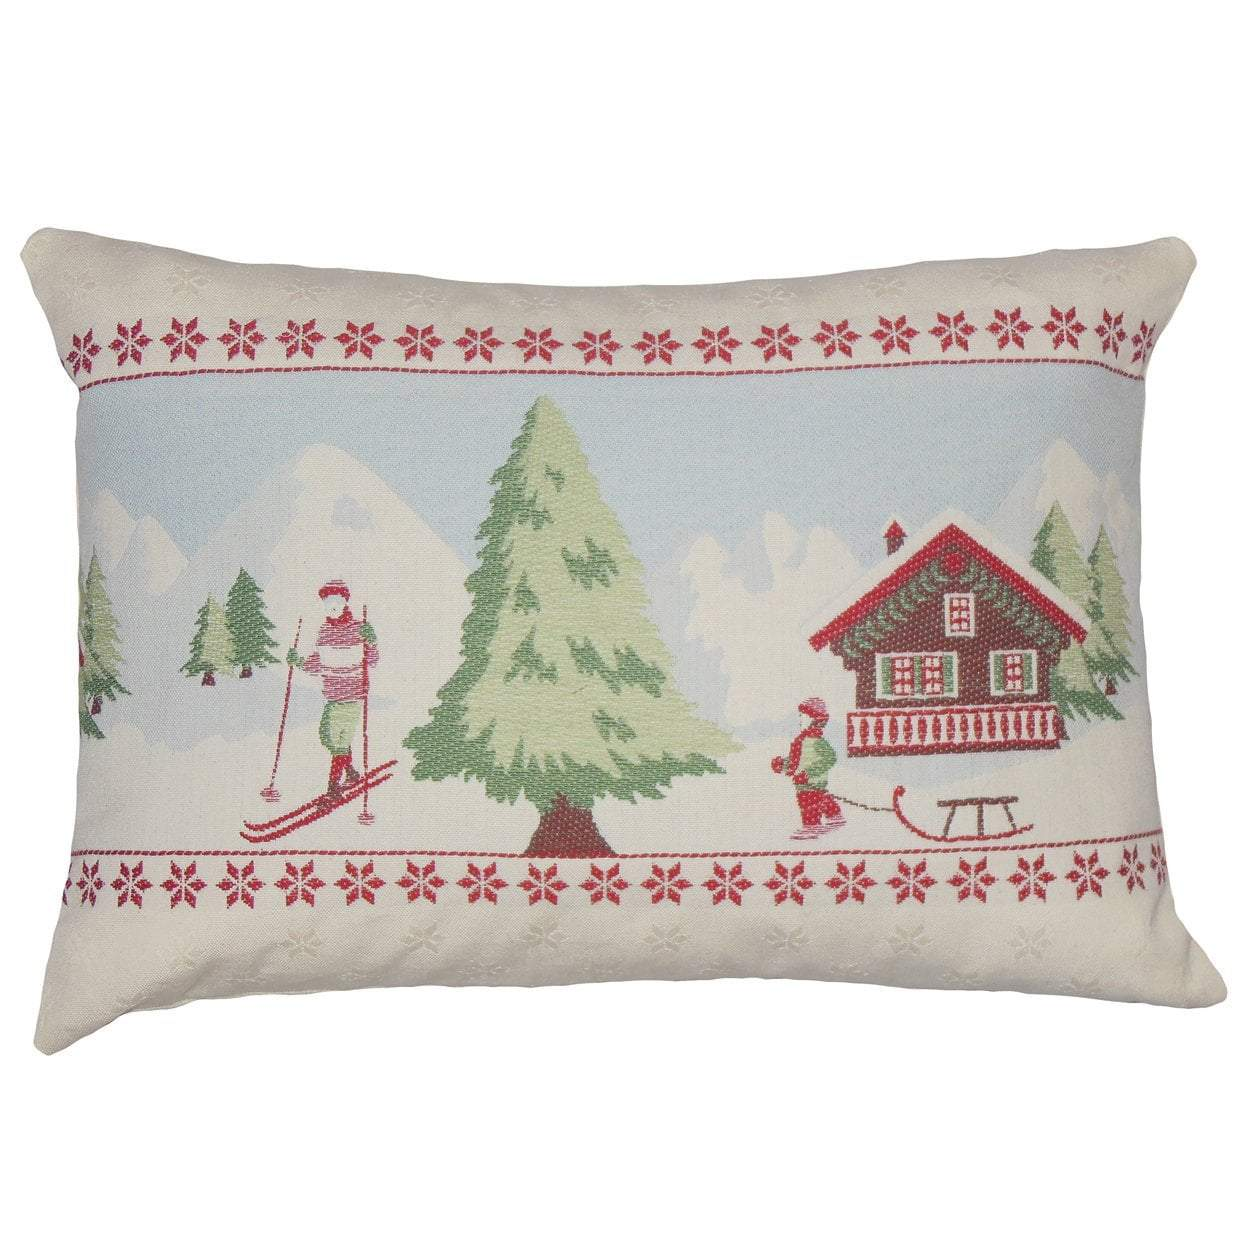 White Cotton Graphic Holiday Throw Pillow Cover